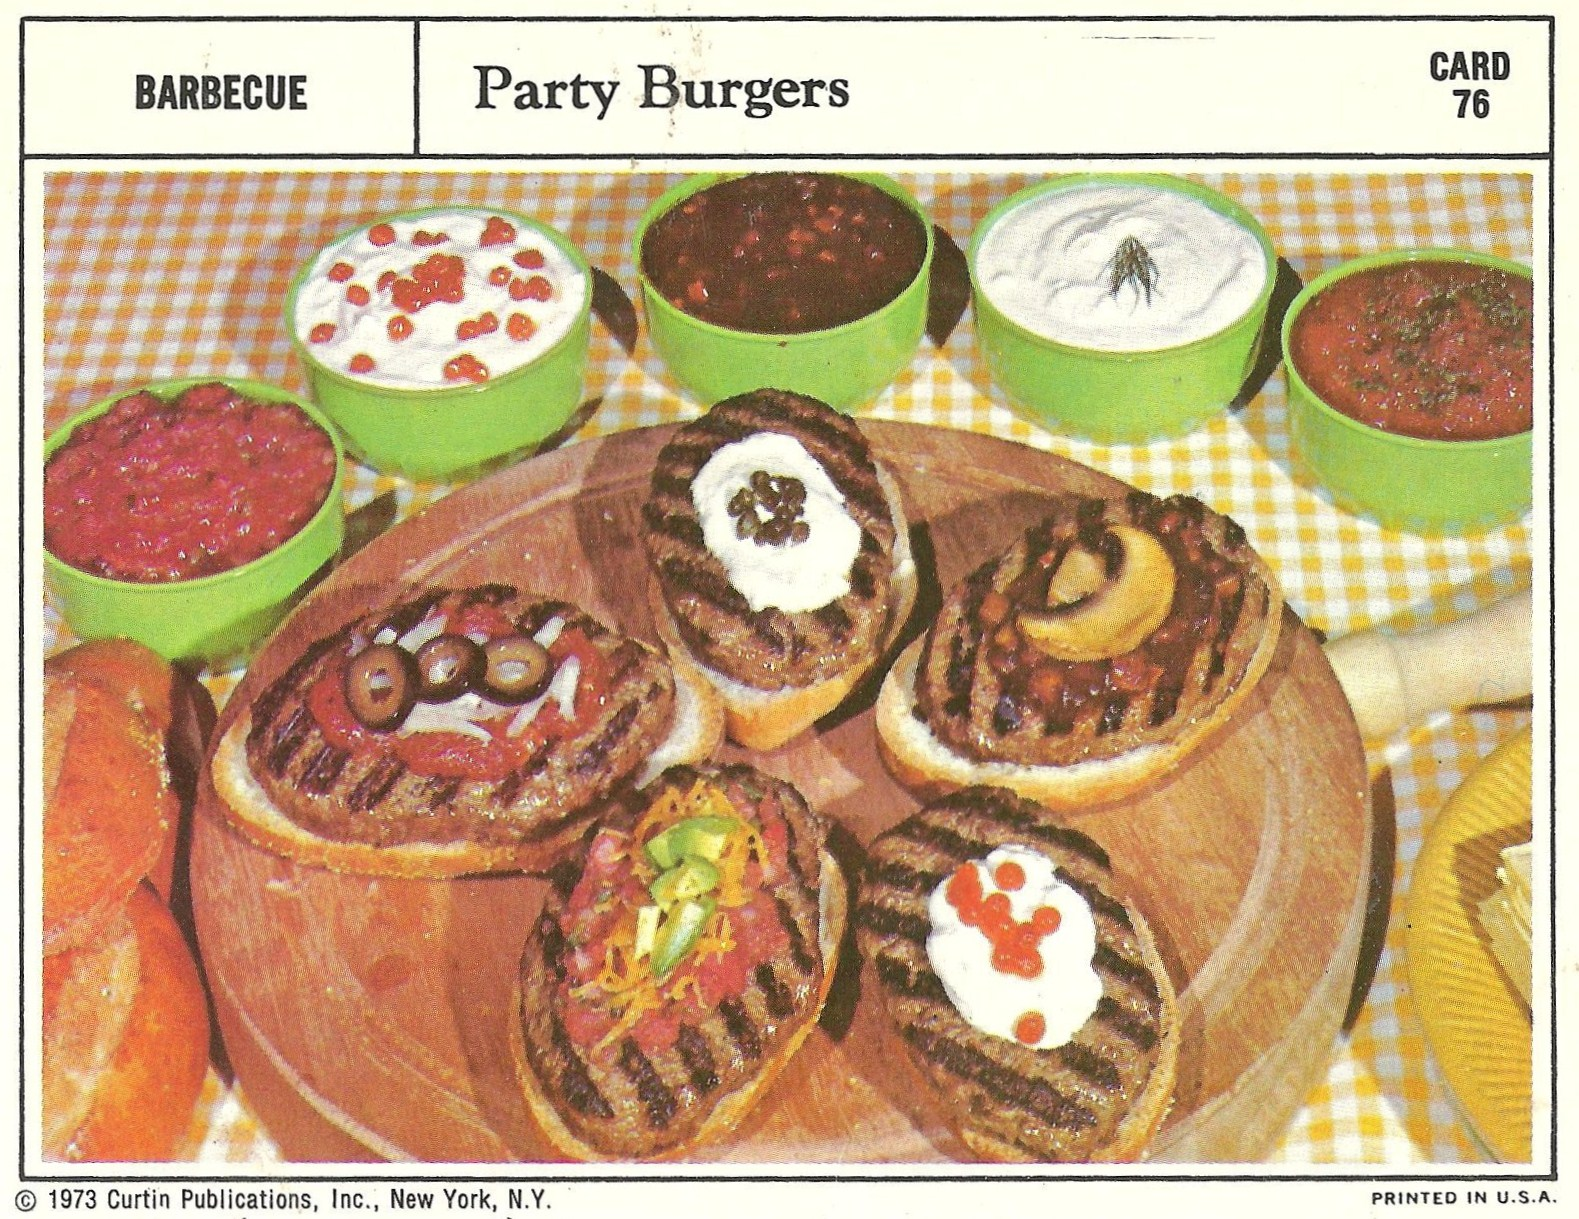 Bad and ugly of retro food 1970s finest recipe cards 17 these look like those frozen salisbury steak meals with the grill lines painted on them same shape and color forumfinder Gallery